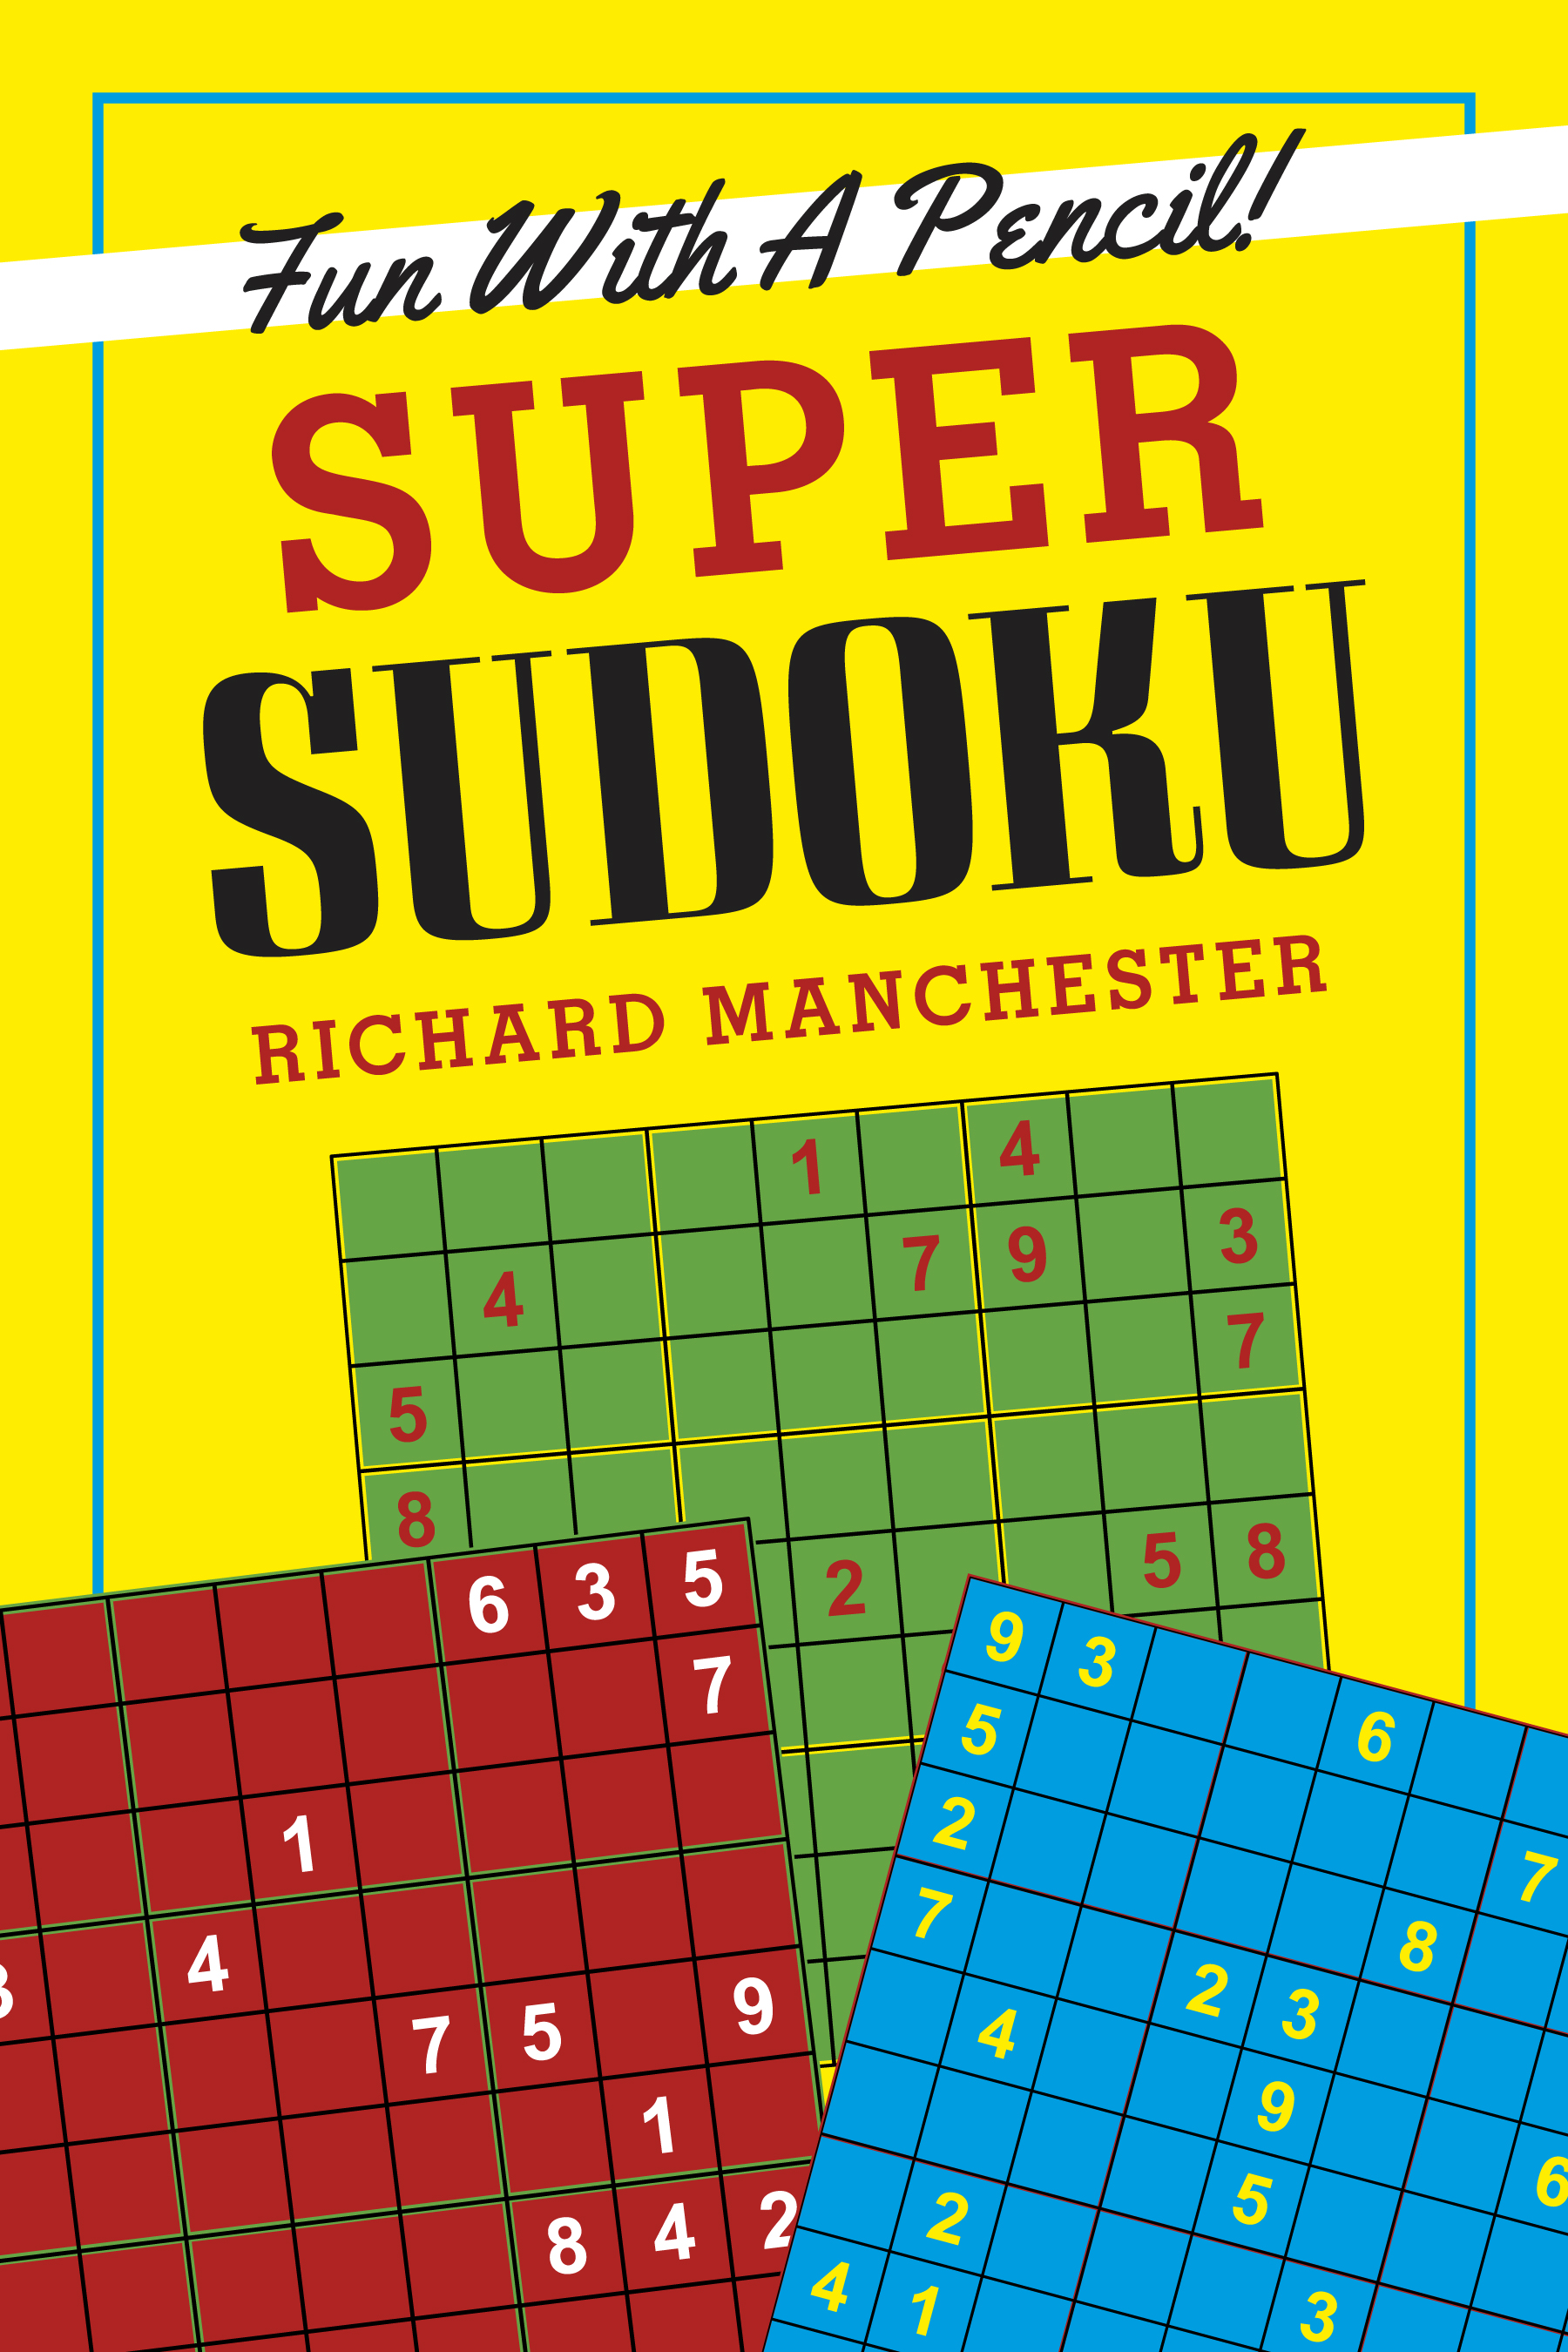 FunWithAPencil-SuperSodukuCrosswords.jpg